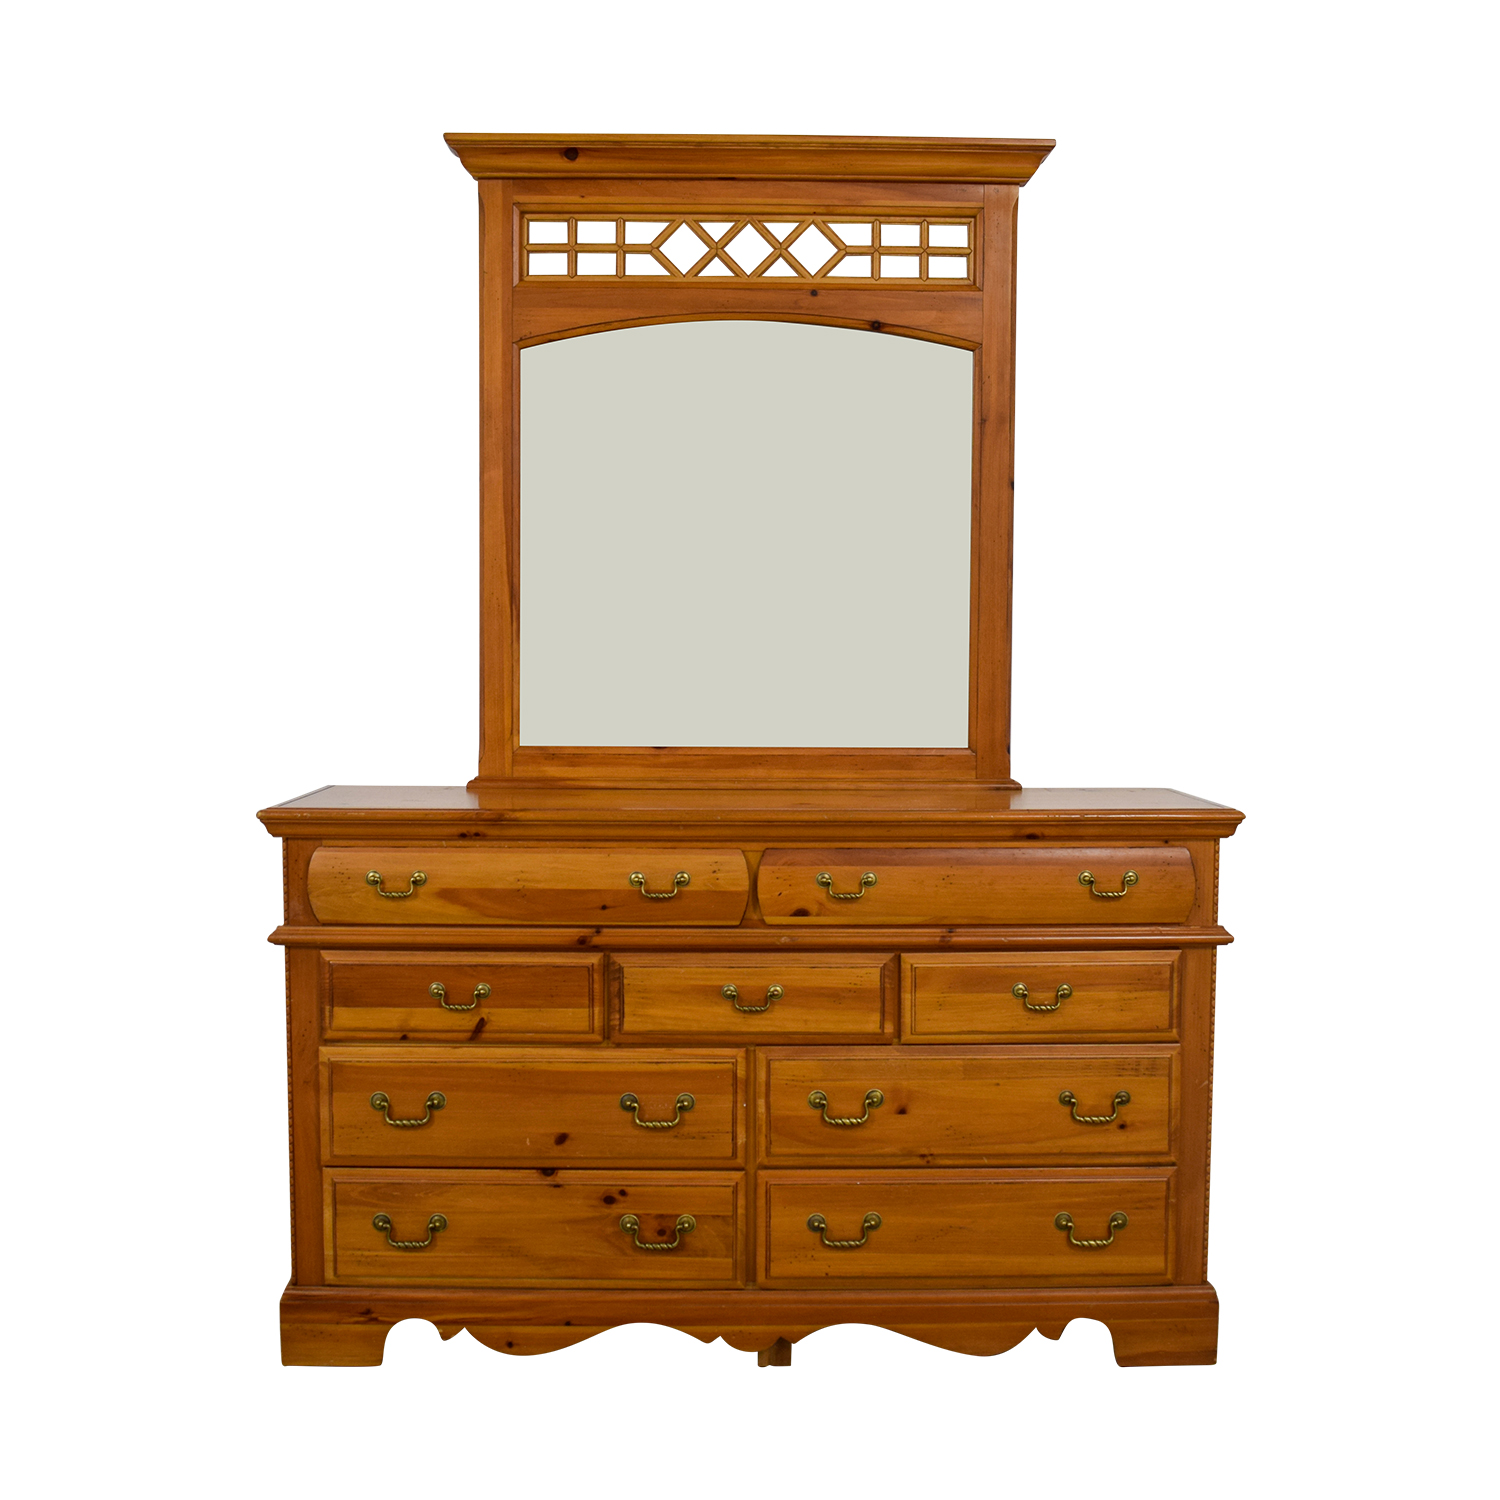 Vaughn Bassett Vaughn Bassett Dresser with Mirror coupon